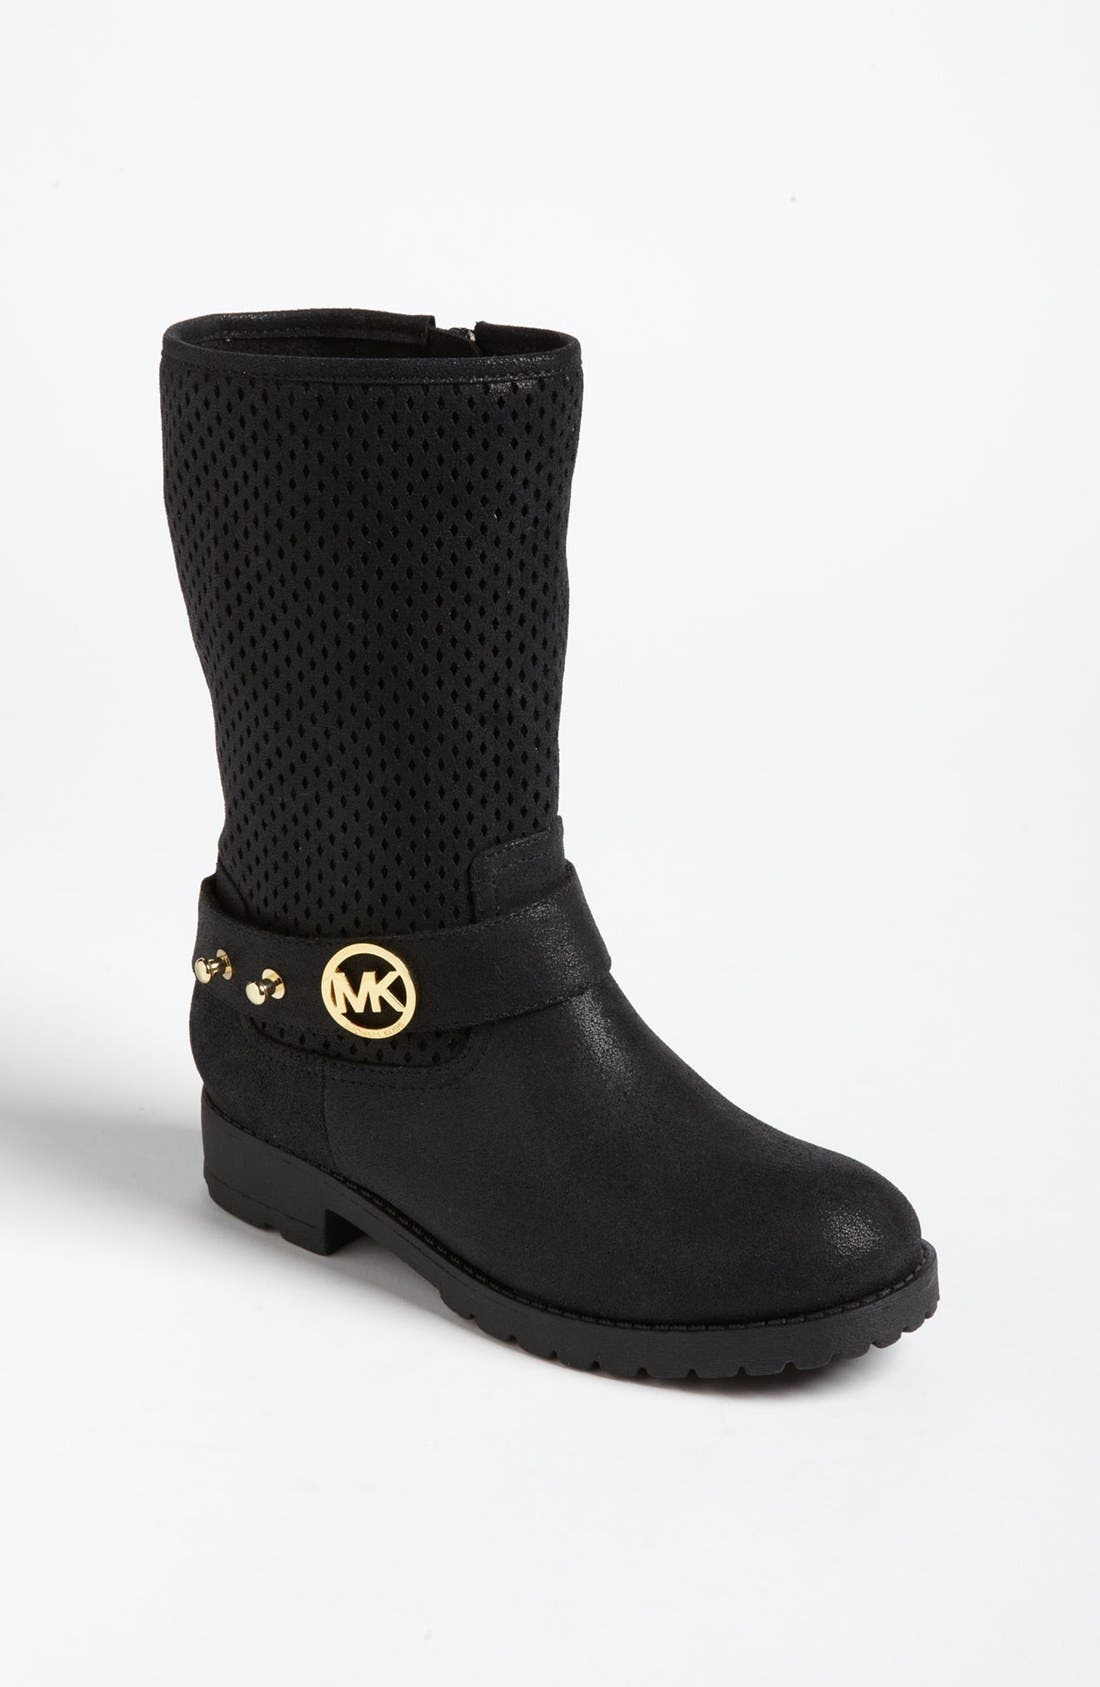 Alternate Image 1 Selected - MICHAEL Michael Kors Perforated Shaft Boot (Toddler, Little Kid & Big Kid) (Online Only)